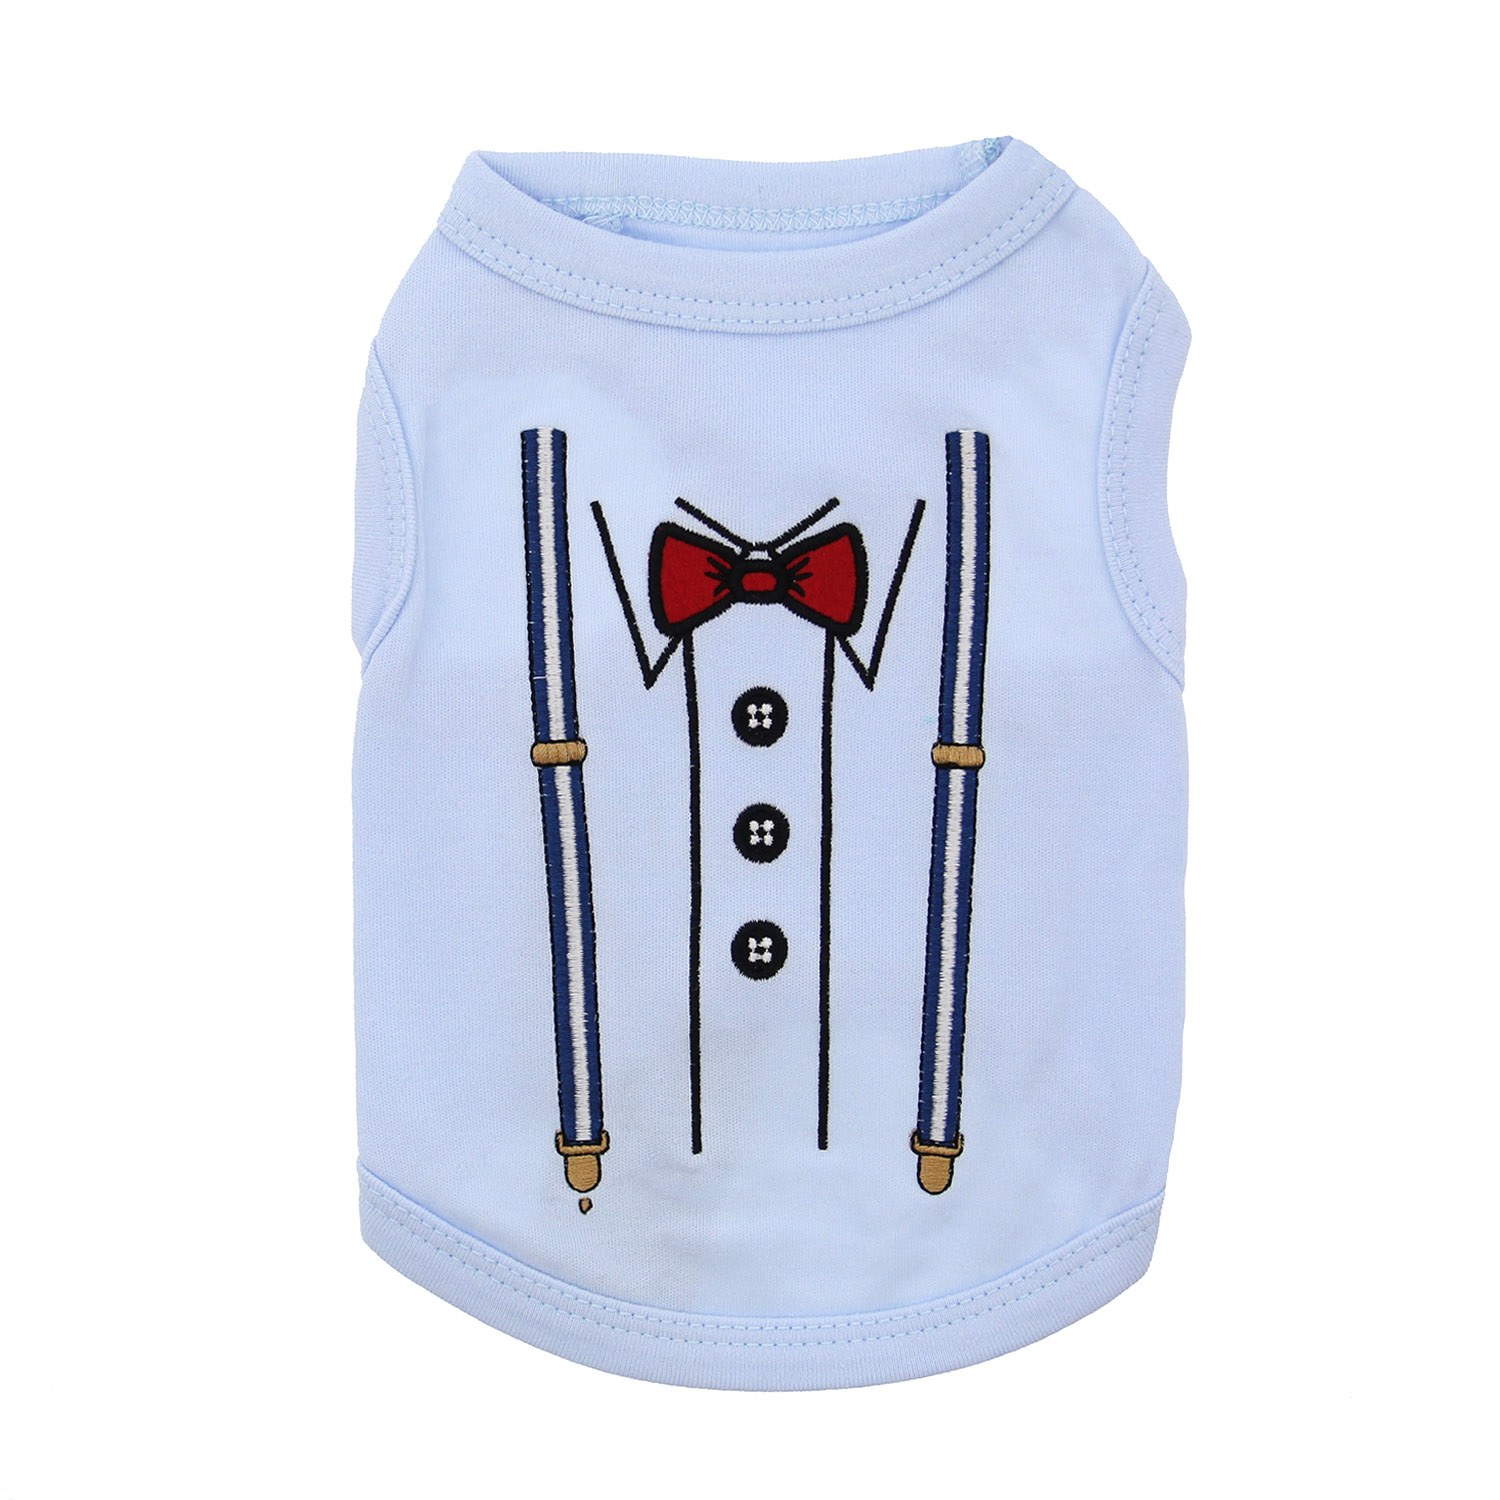 Suspenders Dog Tank by Parisian Pet - Baby Blue